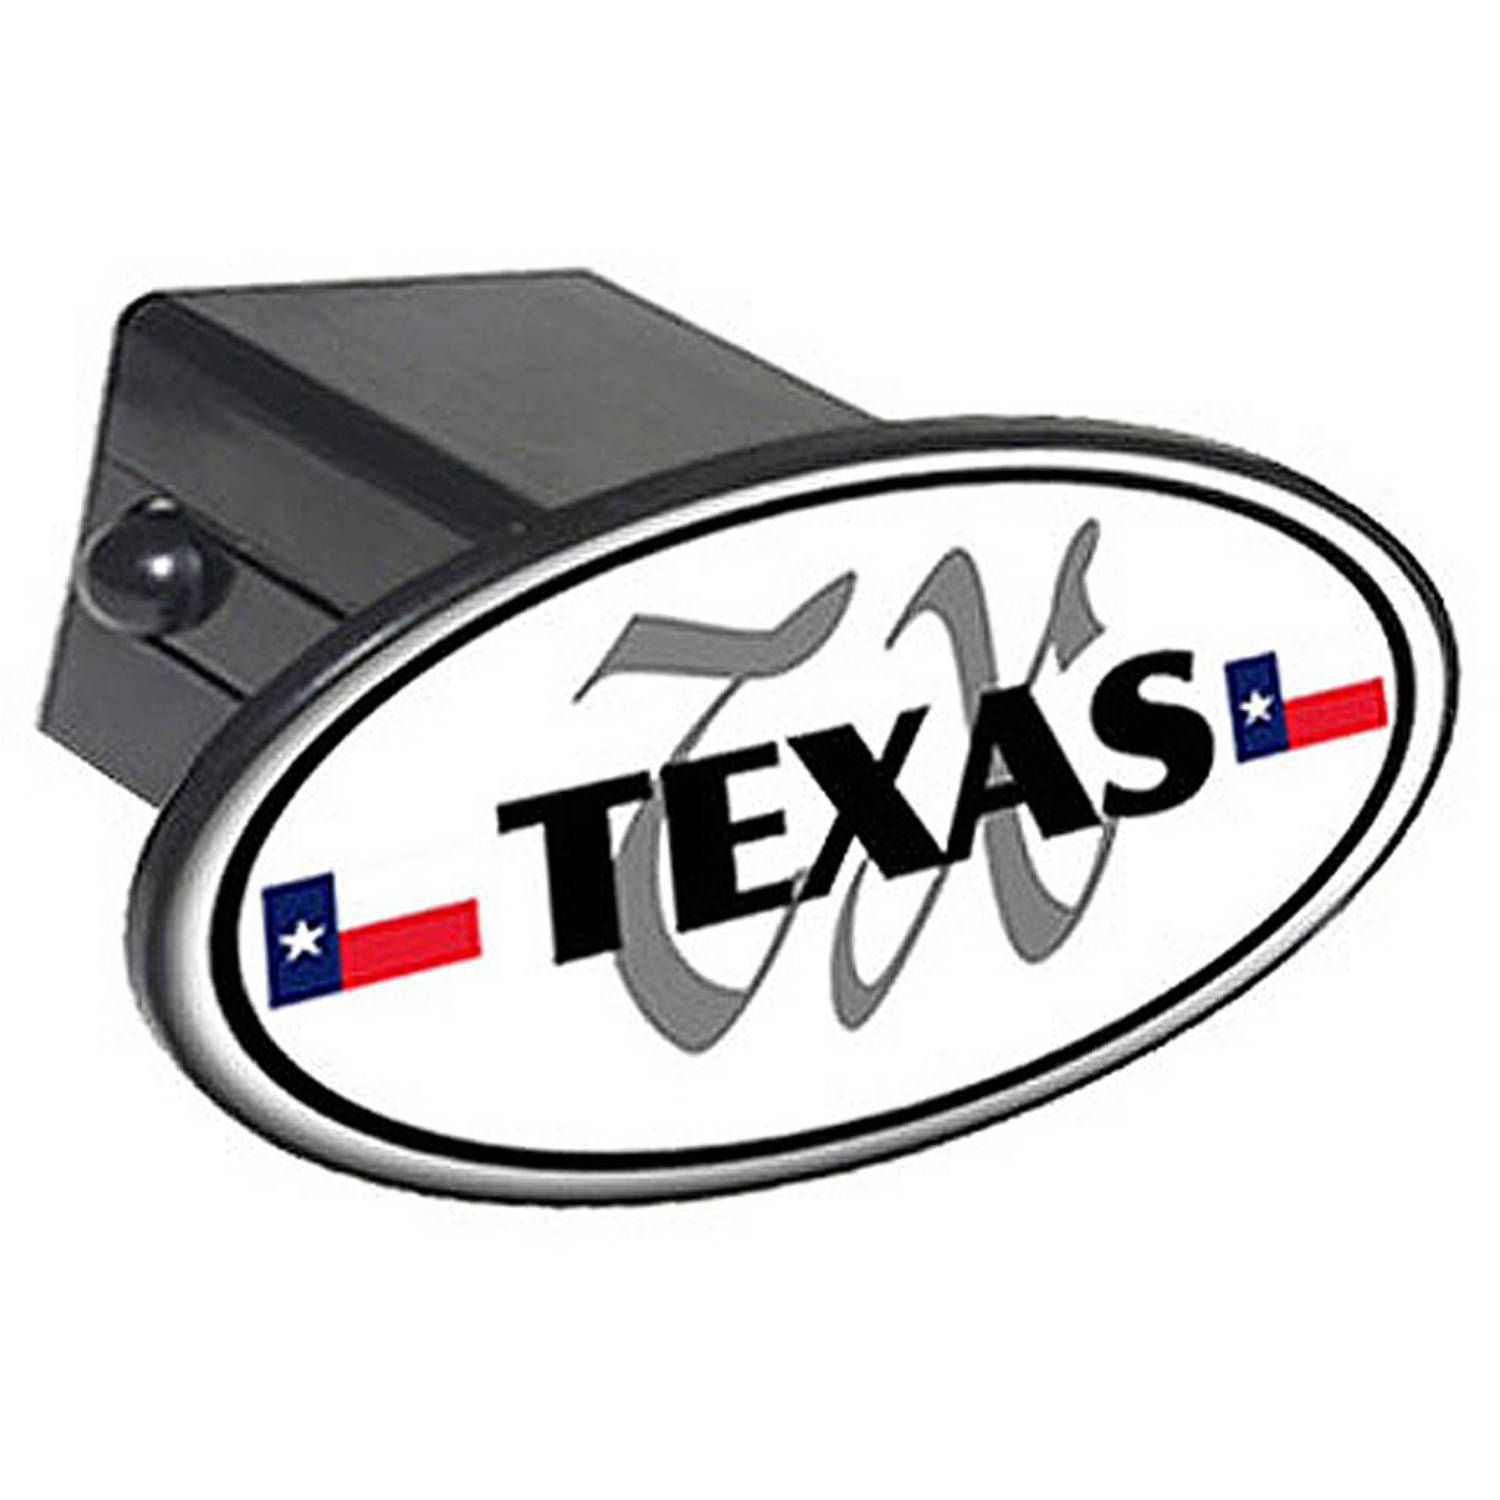 "Texas Euro Oval Flag 2"" Oval Tow Trailer Hitch Cover Plug Insert"